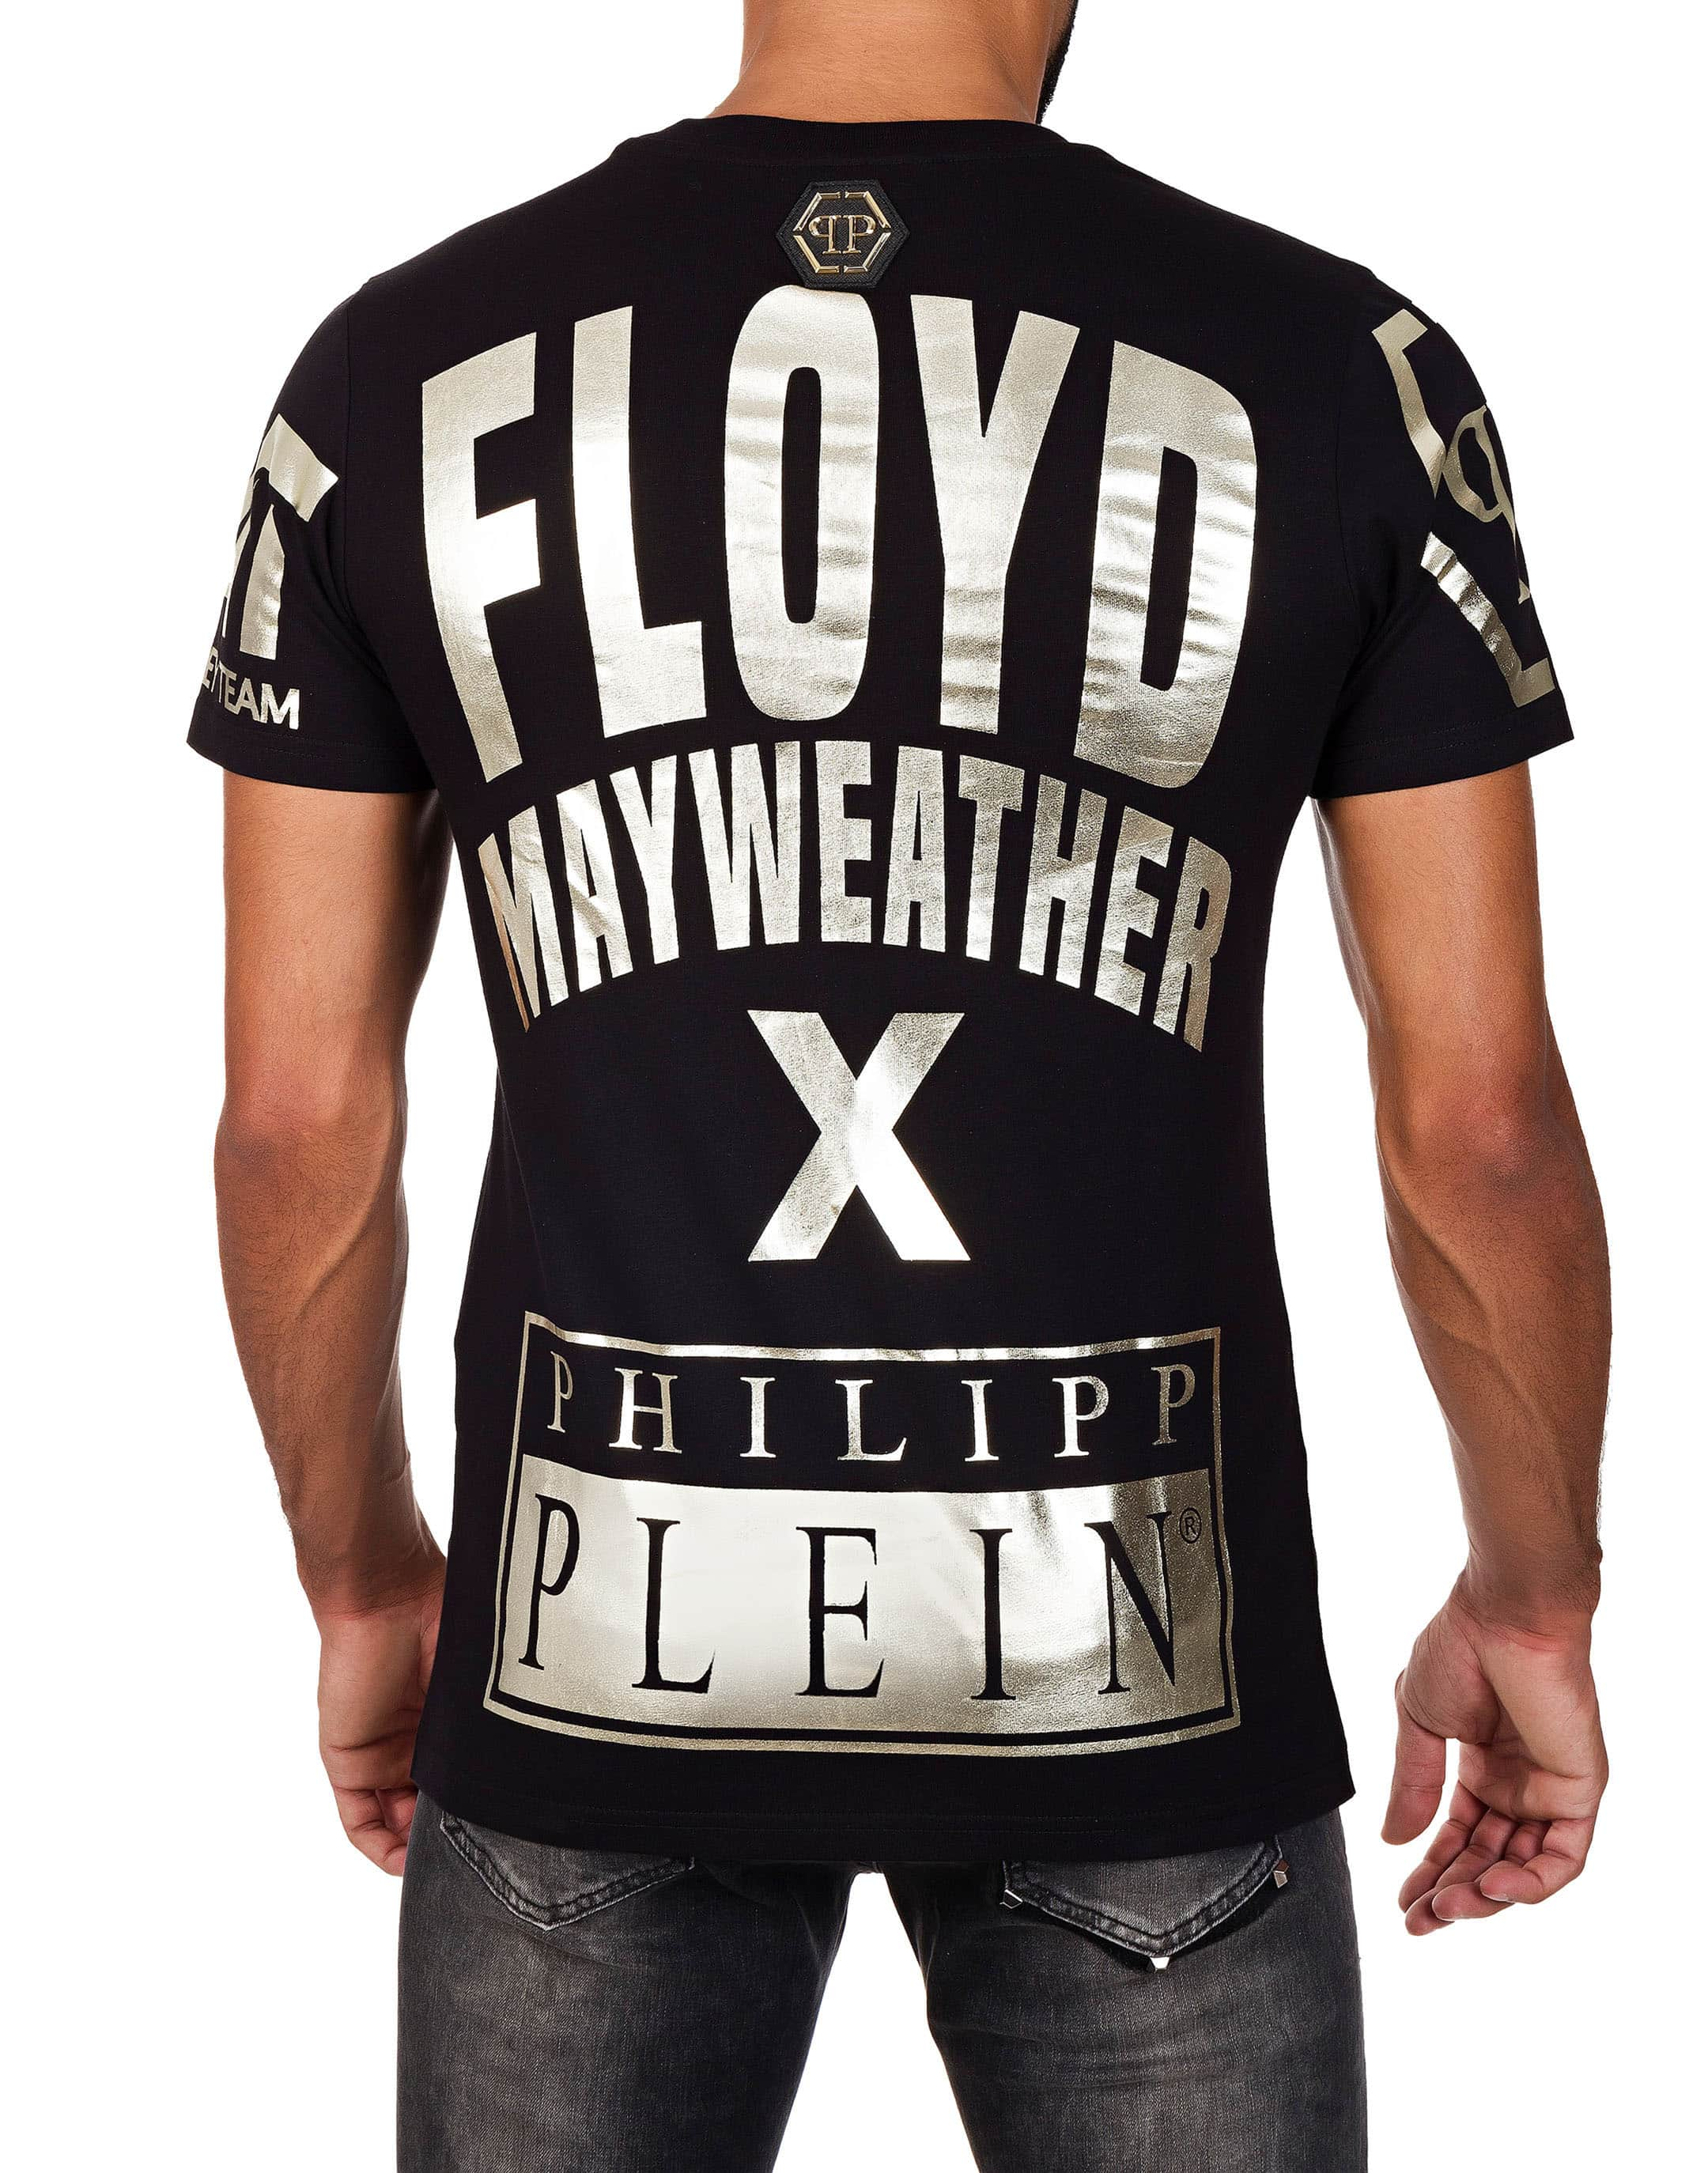 philipp plein t shirt 2018